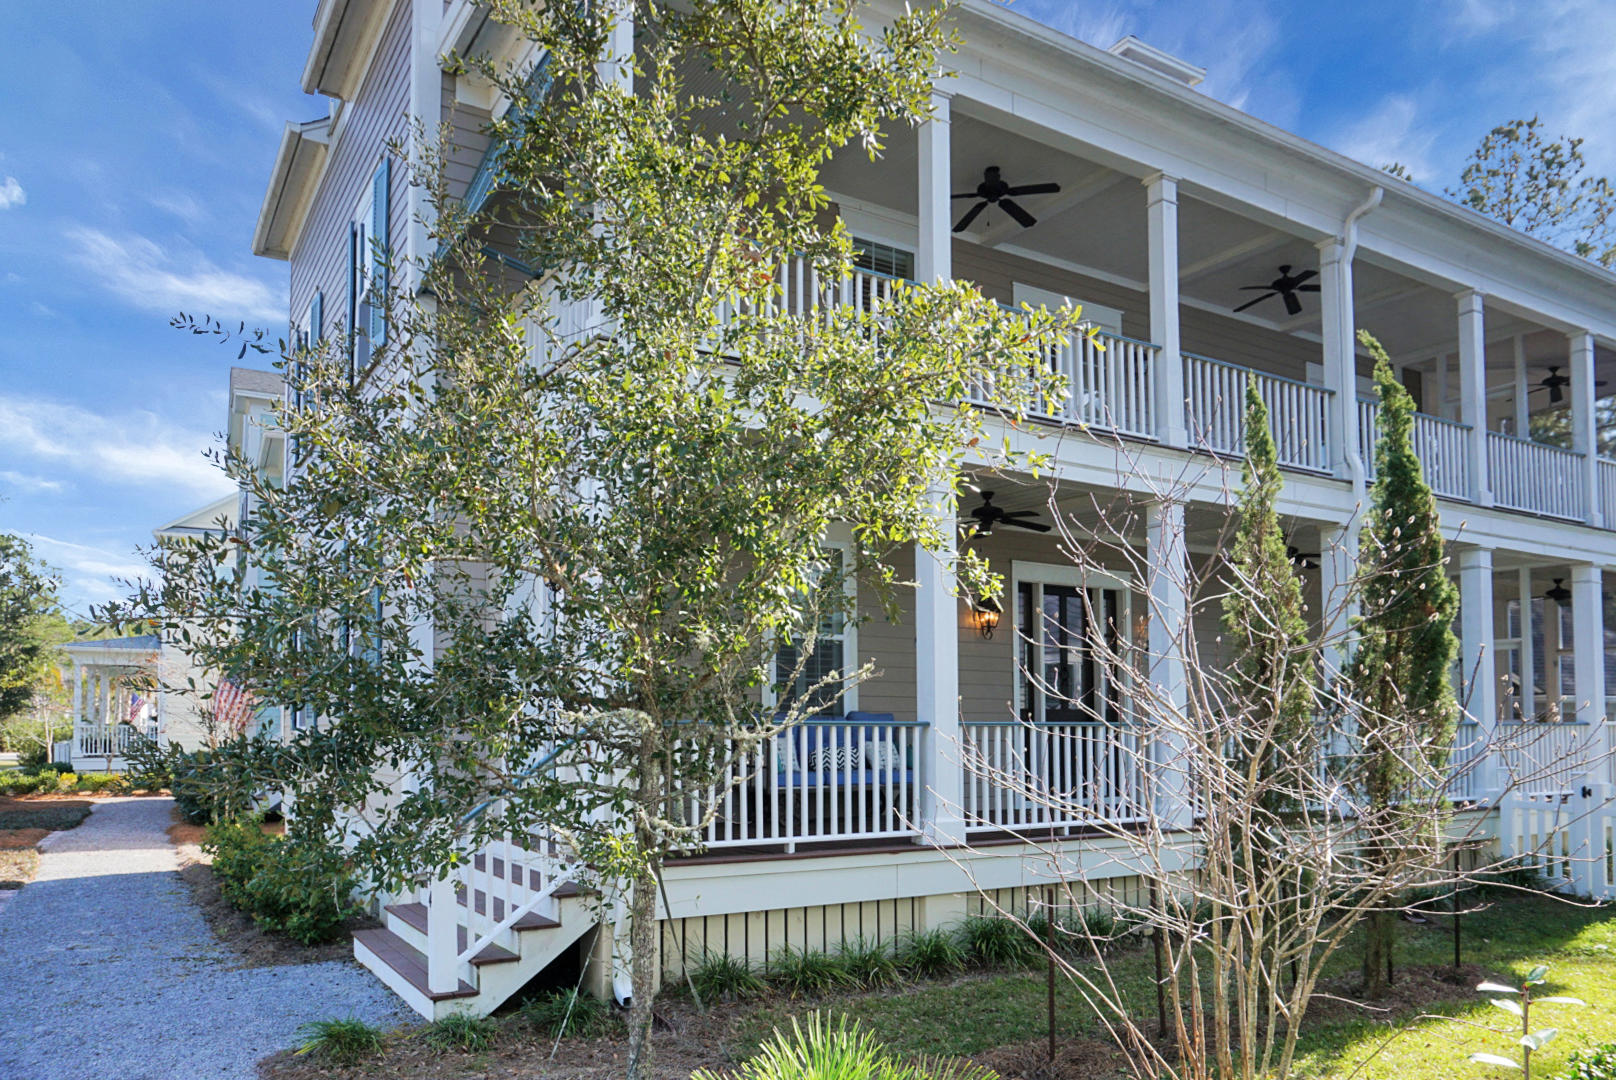 Rivertowne On The Wando Homes For Sale - 2844 Rivertowne, Mount Pleasant, SC - 16